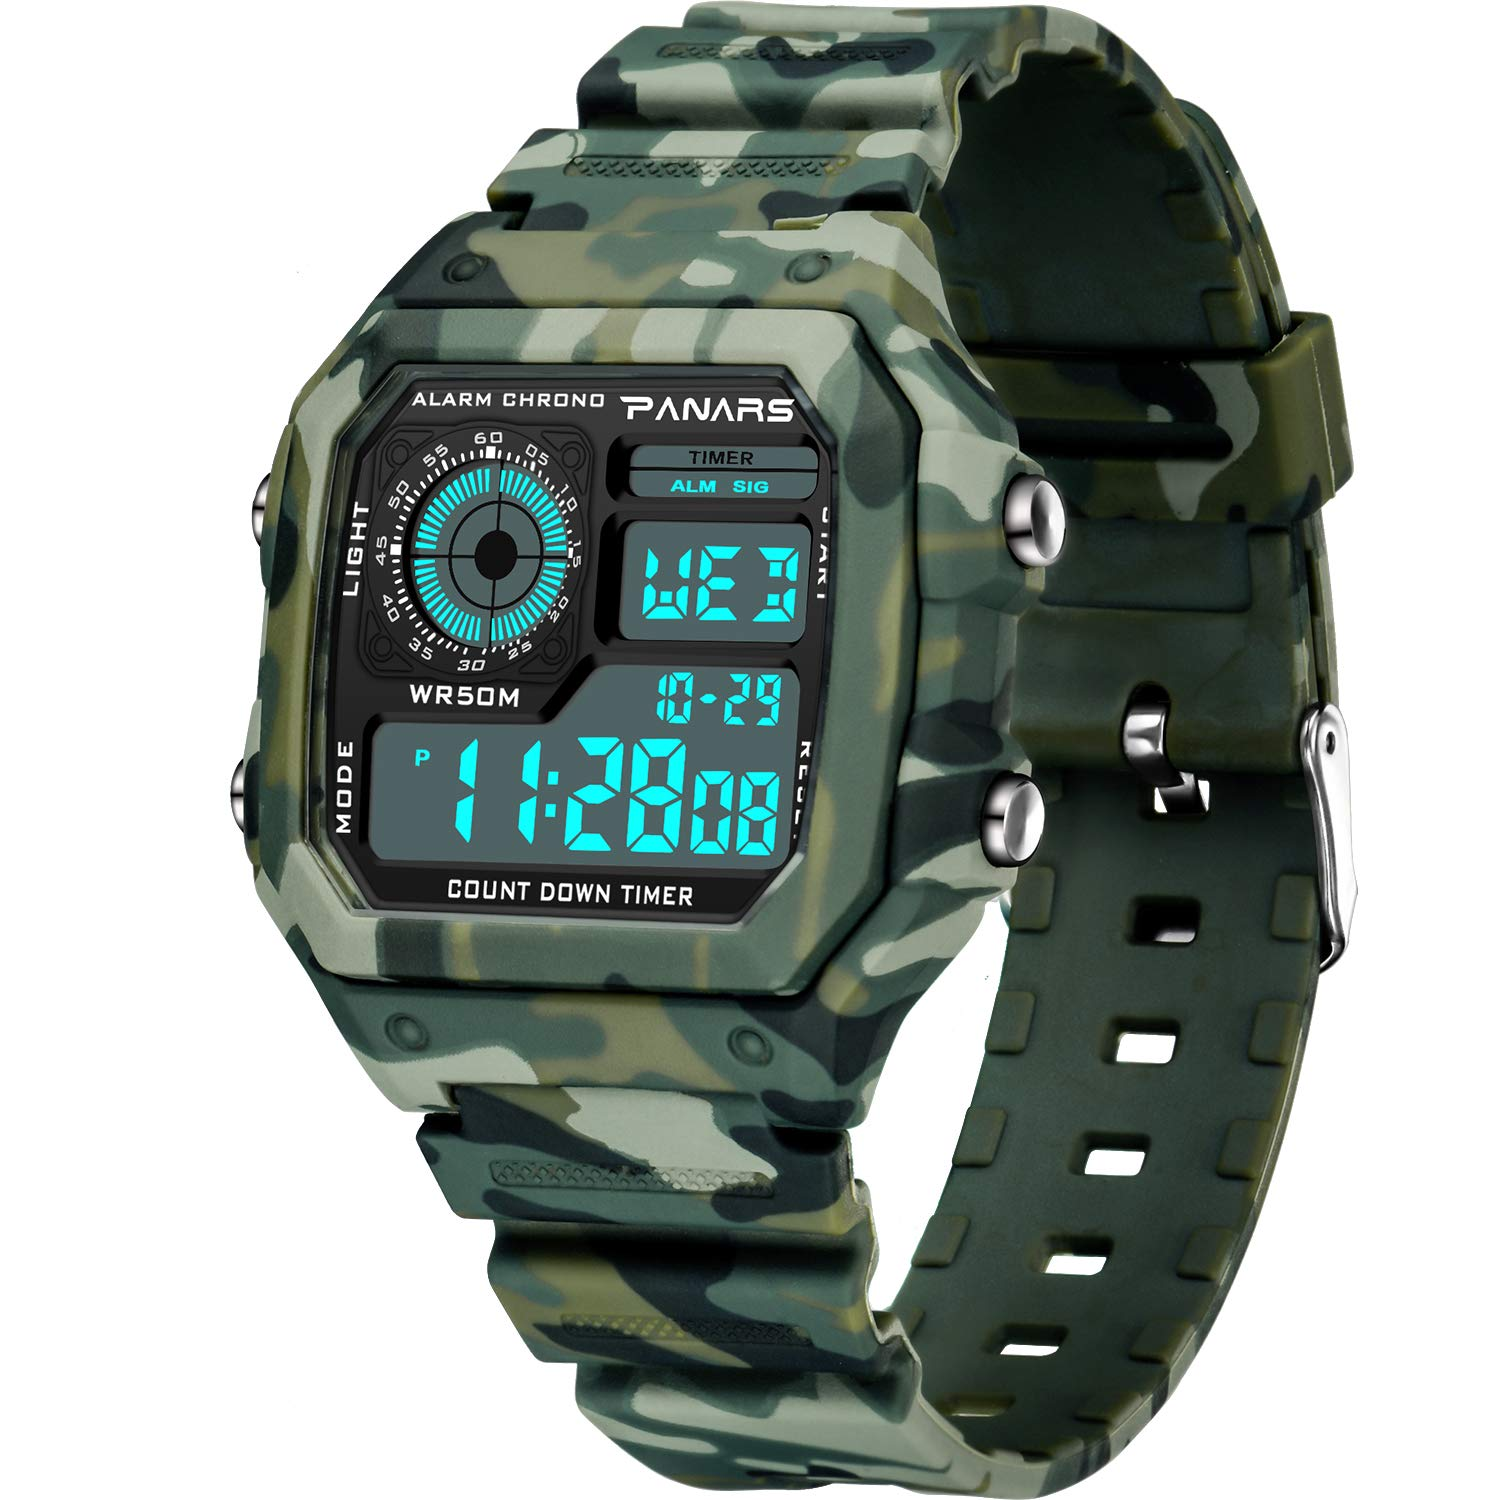 Honesty Mens Watch Led Digital Date Sports Army Males Quartz Watch Outdoor Electronics Men Clock For Sports Wristband Running Gift Professional Design Watches